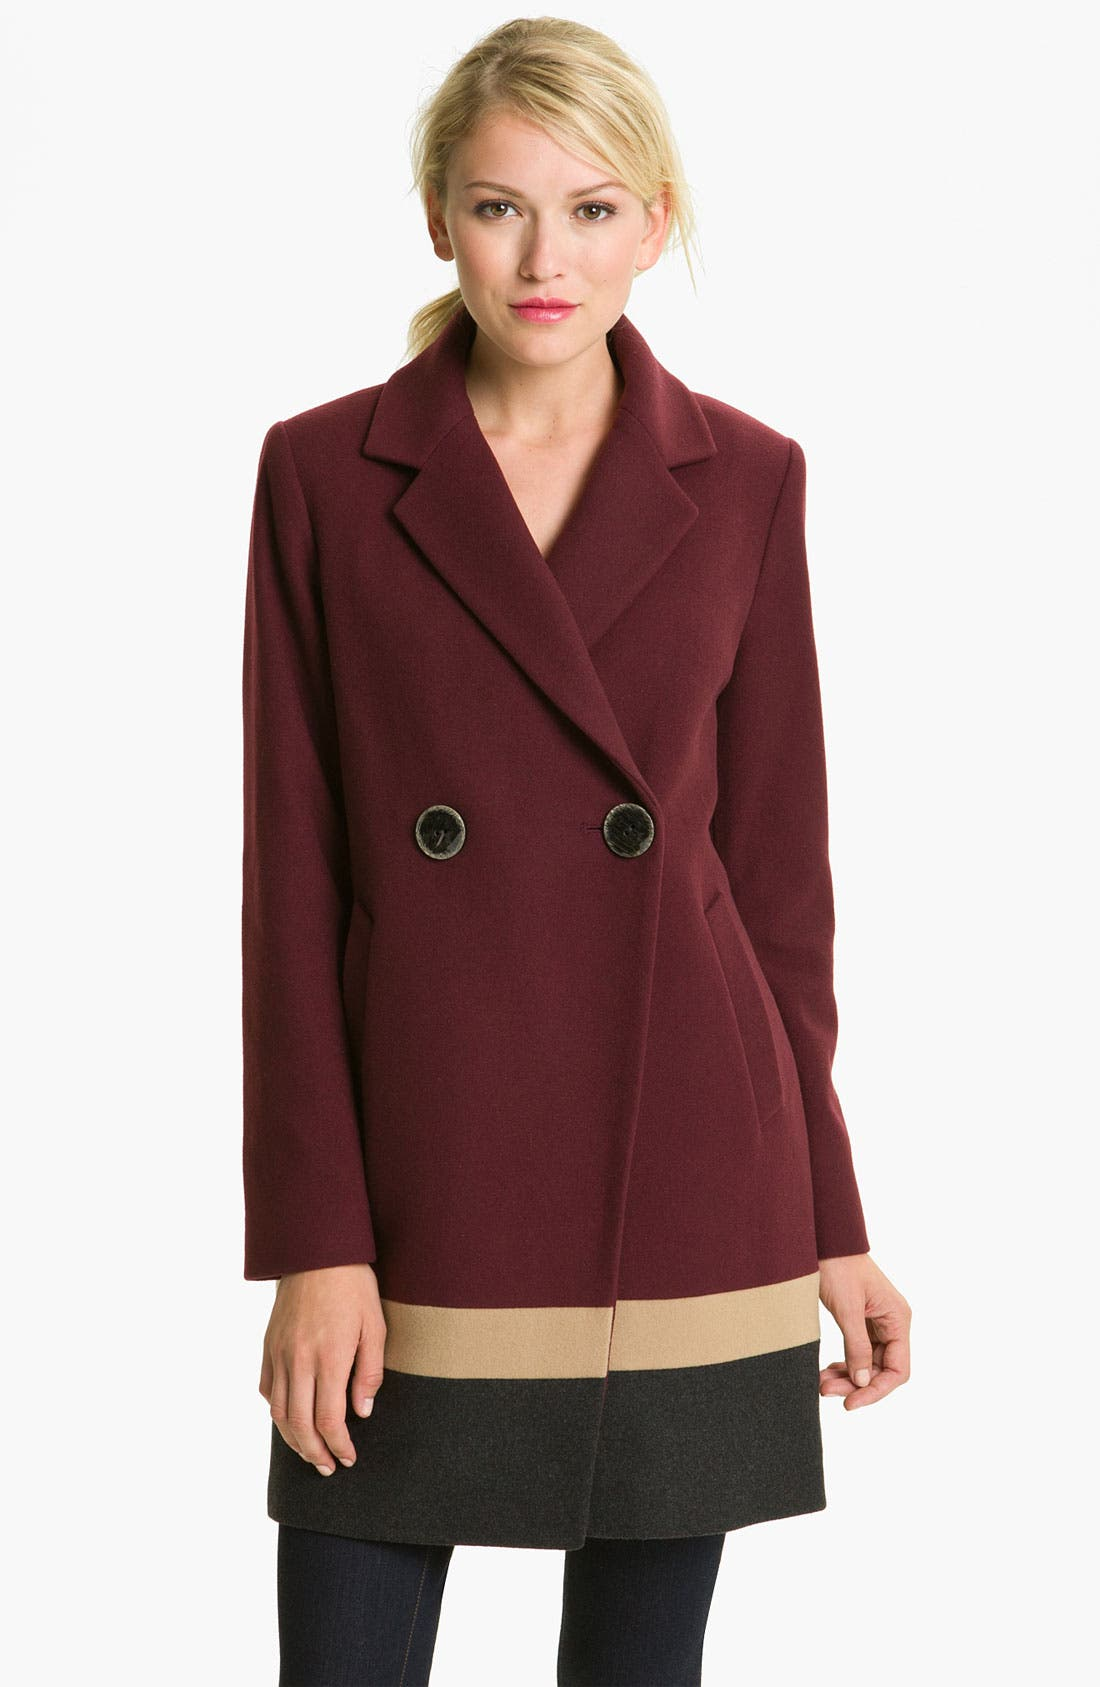 Alternate Image 1 Selected - Vince Camuto Colorblocked Wool Blend Coat